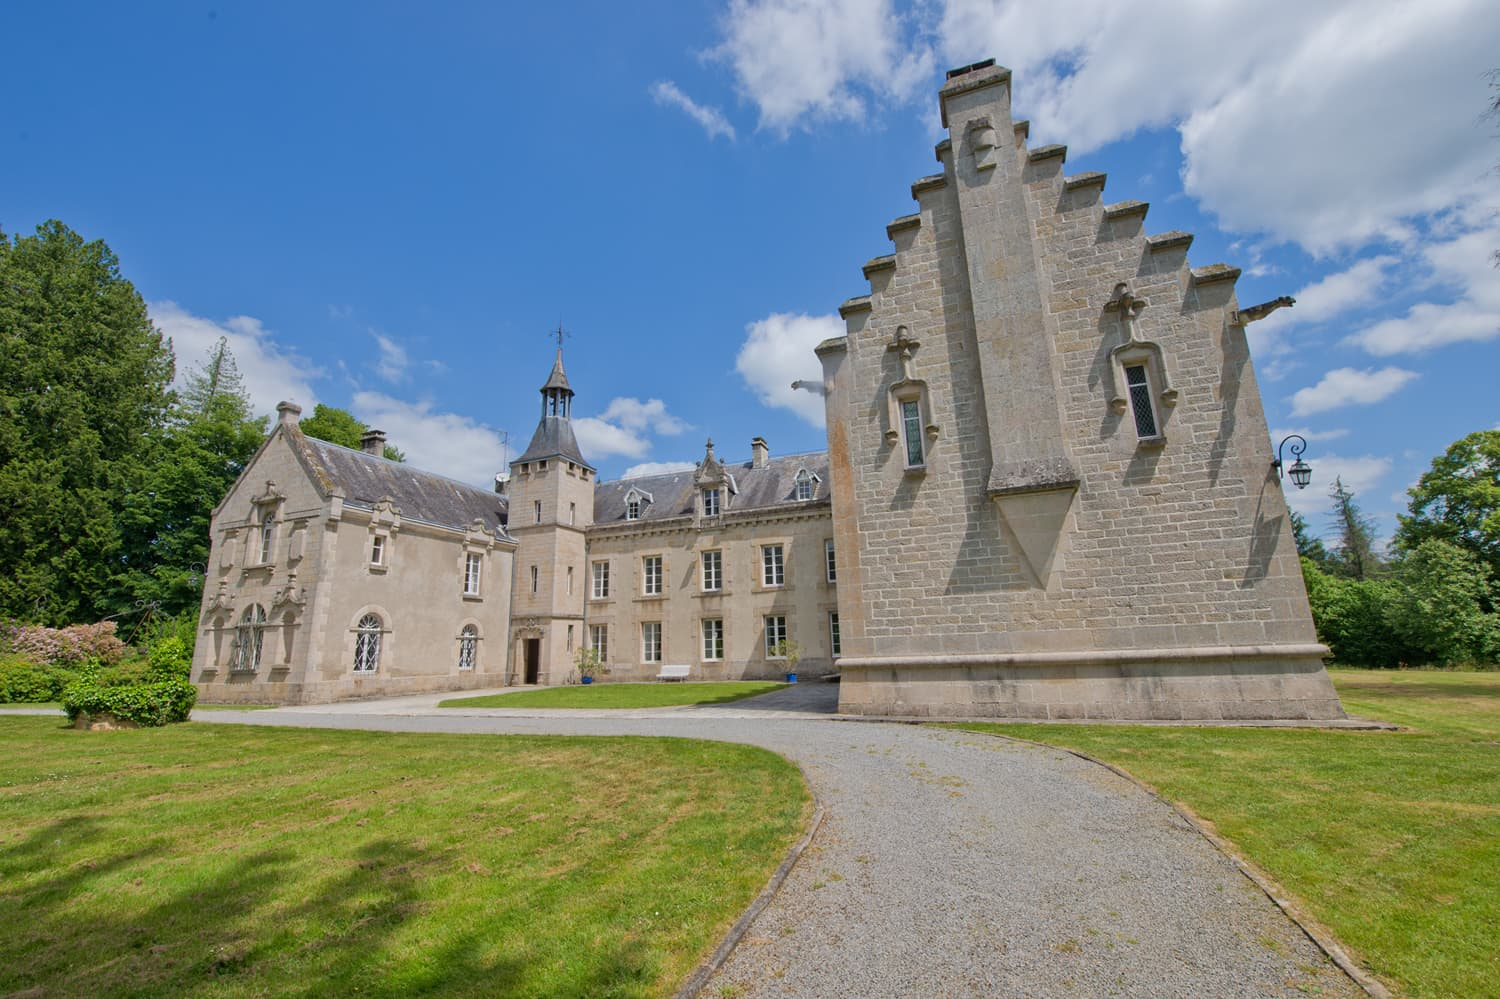 Holiday château in Limousin